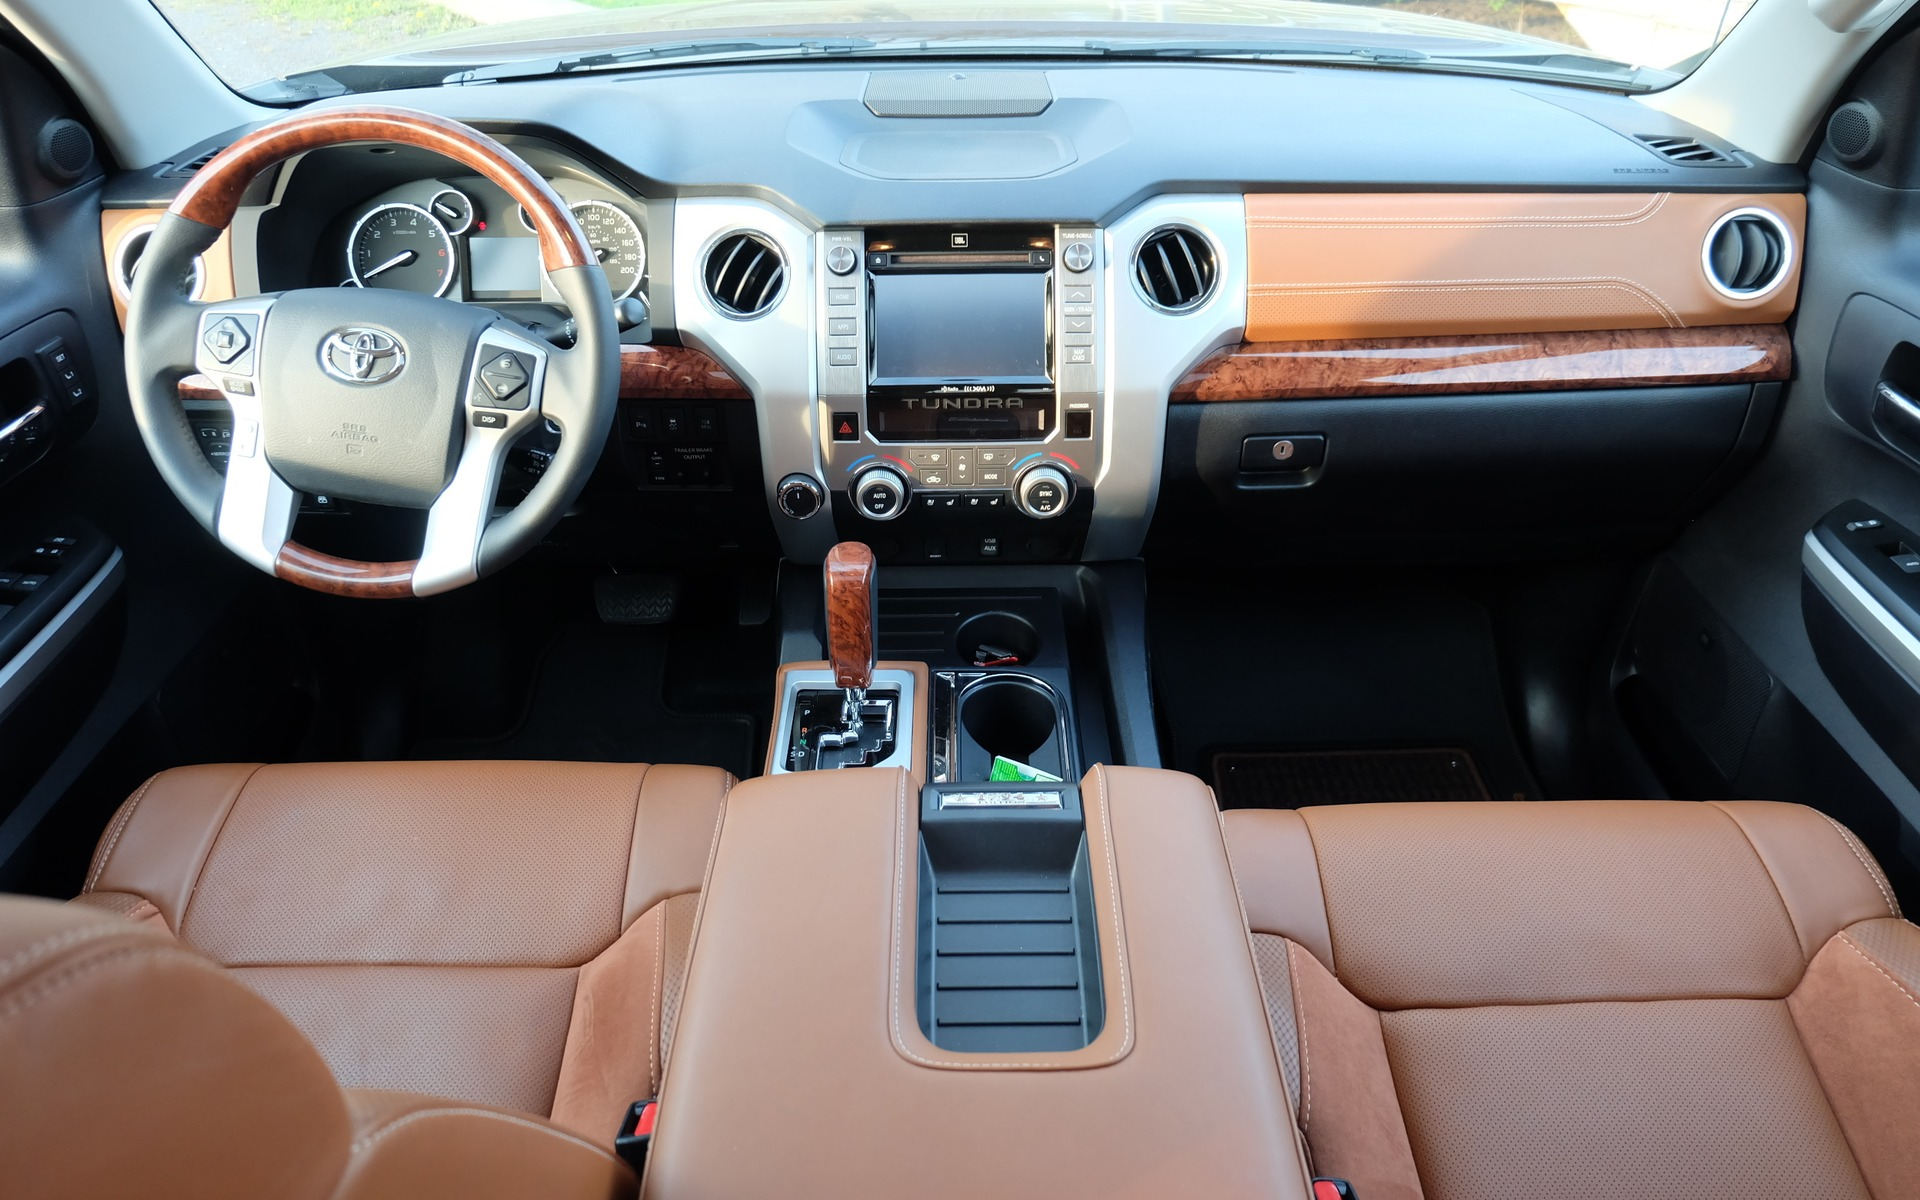 2016 Toyota Tundra 1794 Edition: The Try-hard - The Car Guide